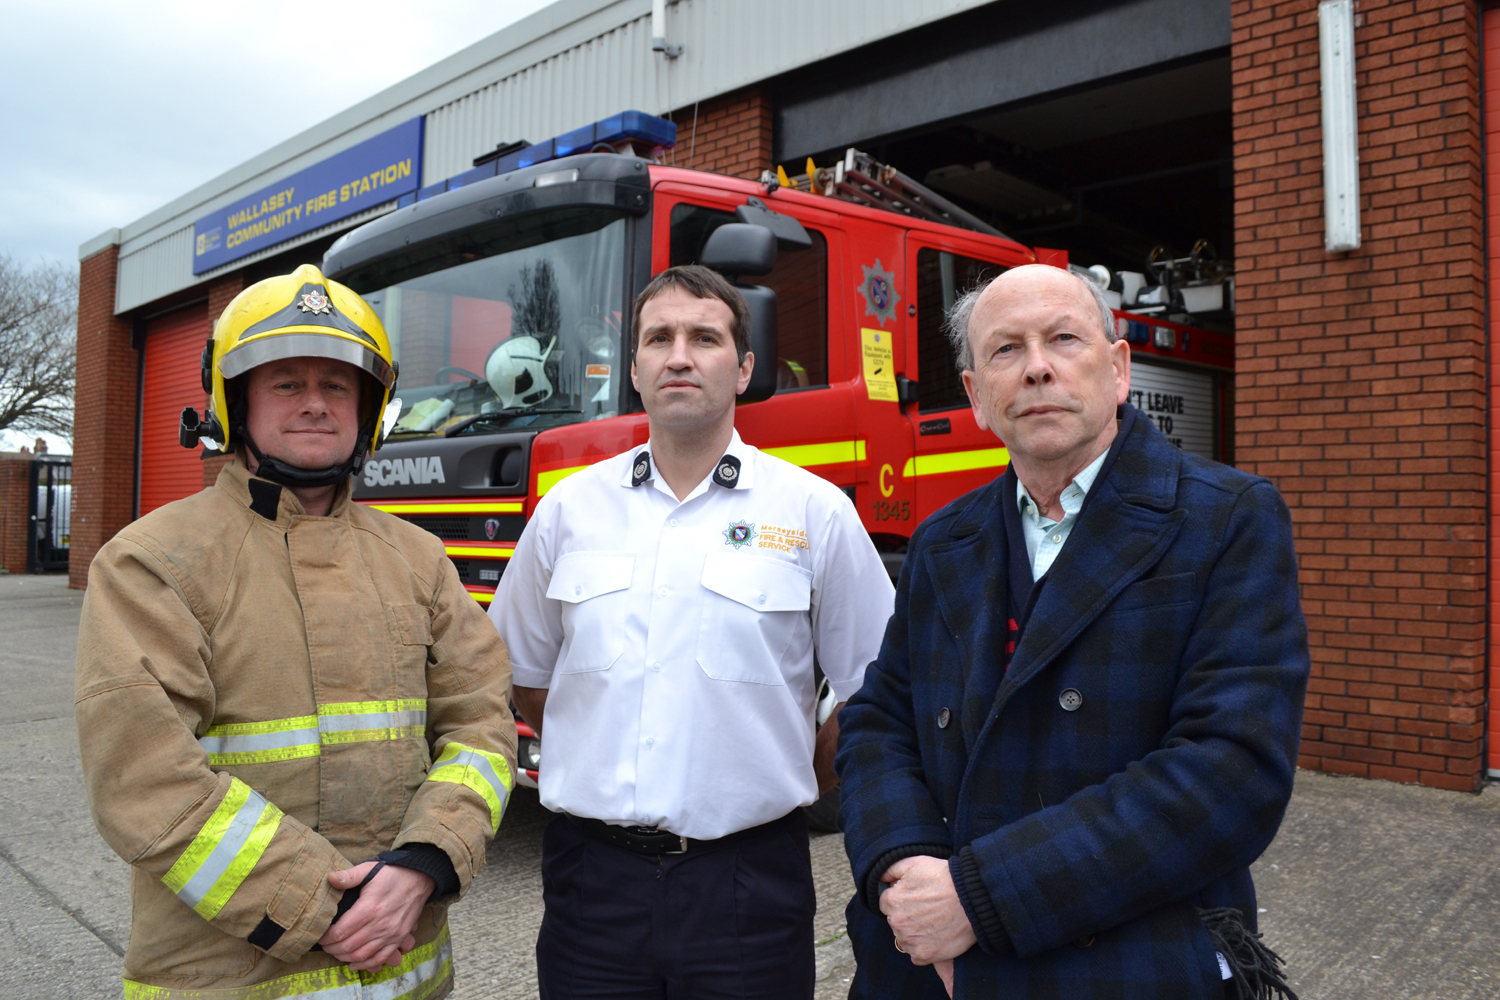 Group manager Paul Murphy (centre) pi0ctured with an MFRS firefighter and Terry Sullivan from Wirral Older People's Parliament during Home Safety Month. Photo by Merseyside Fire & Rescue Service.